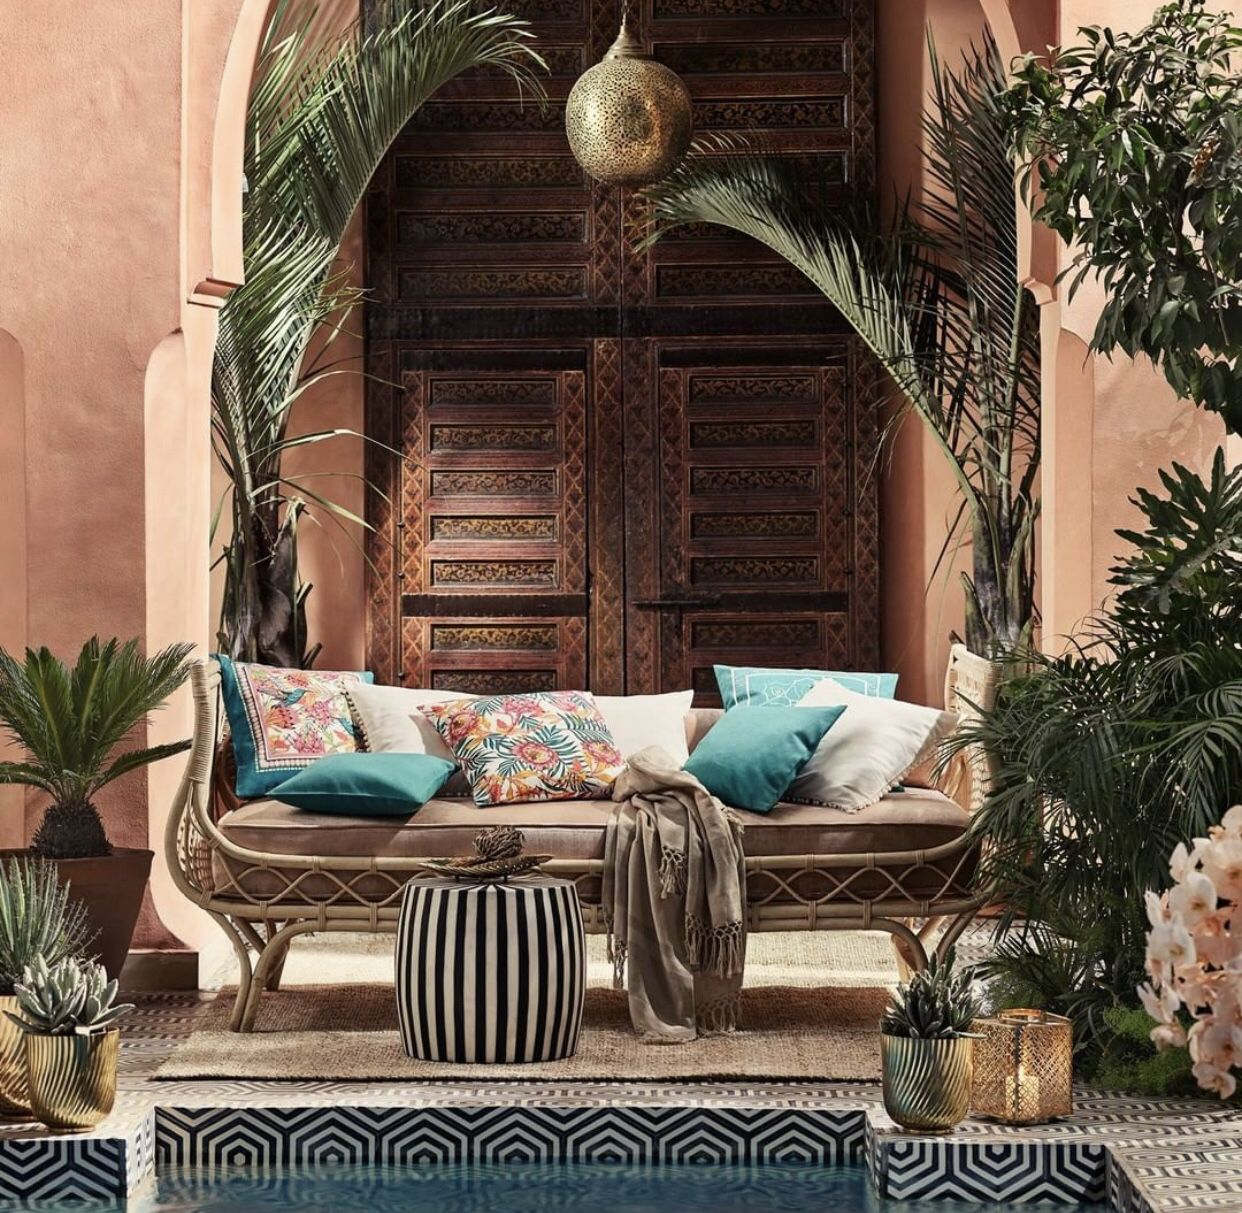 Pin by Briana Mejia on Living room ideas | H&m home, Decor ...